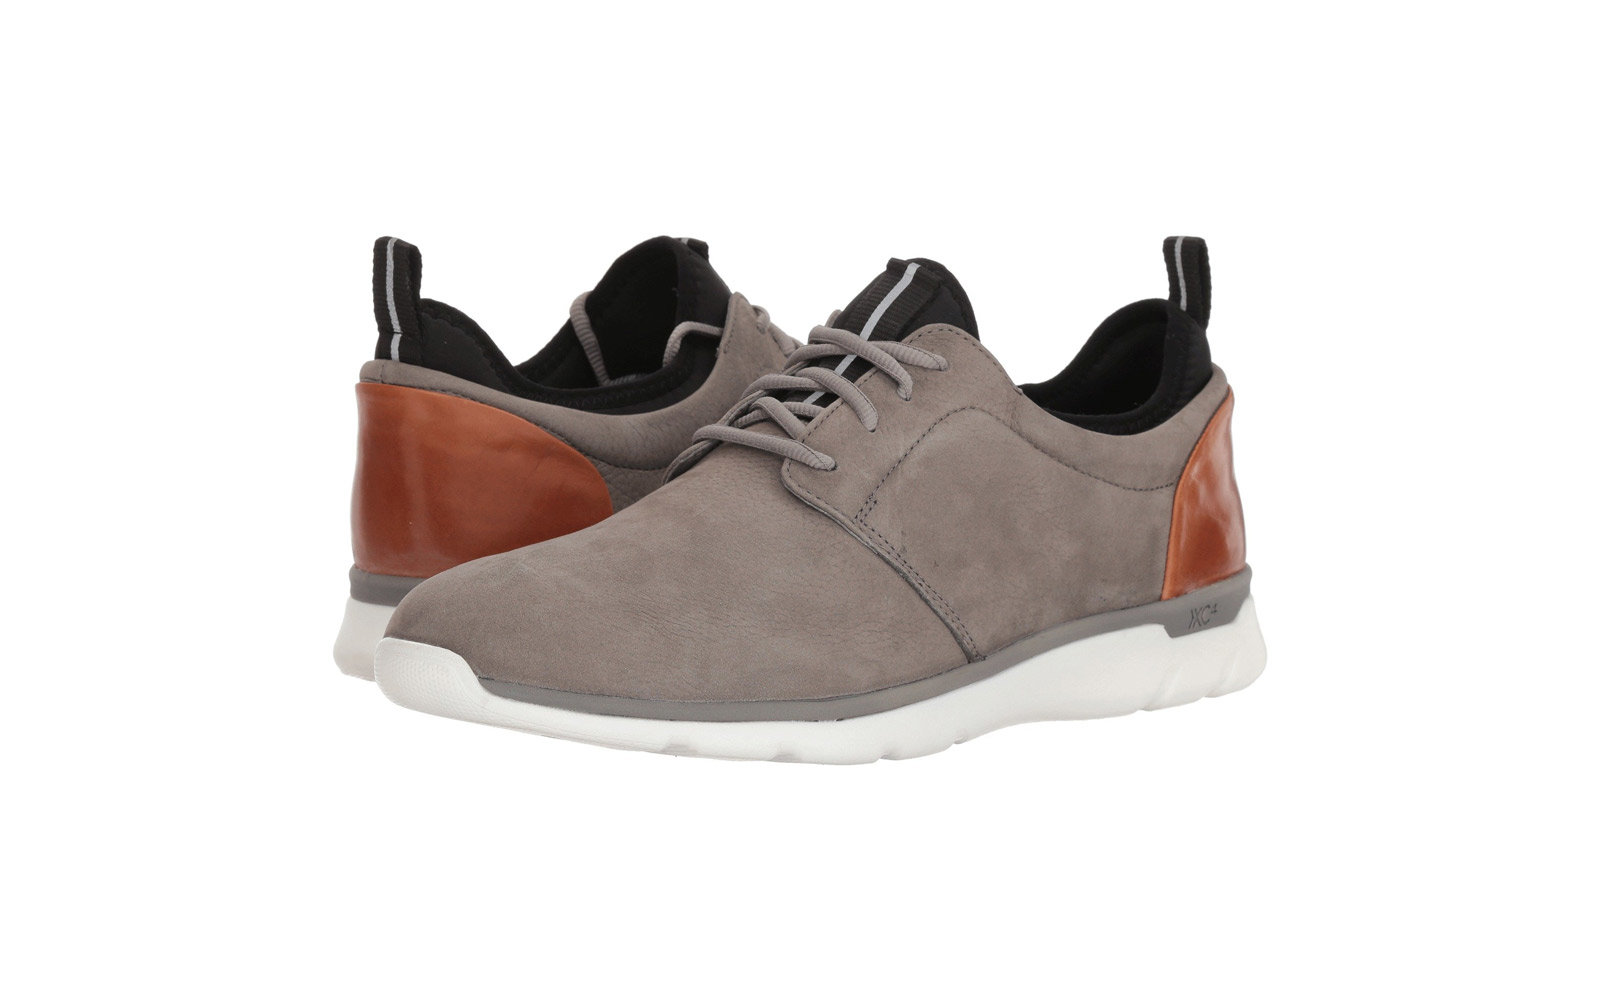 mens-waterproof-shoes-johnston-murphy